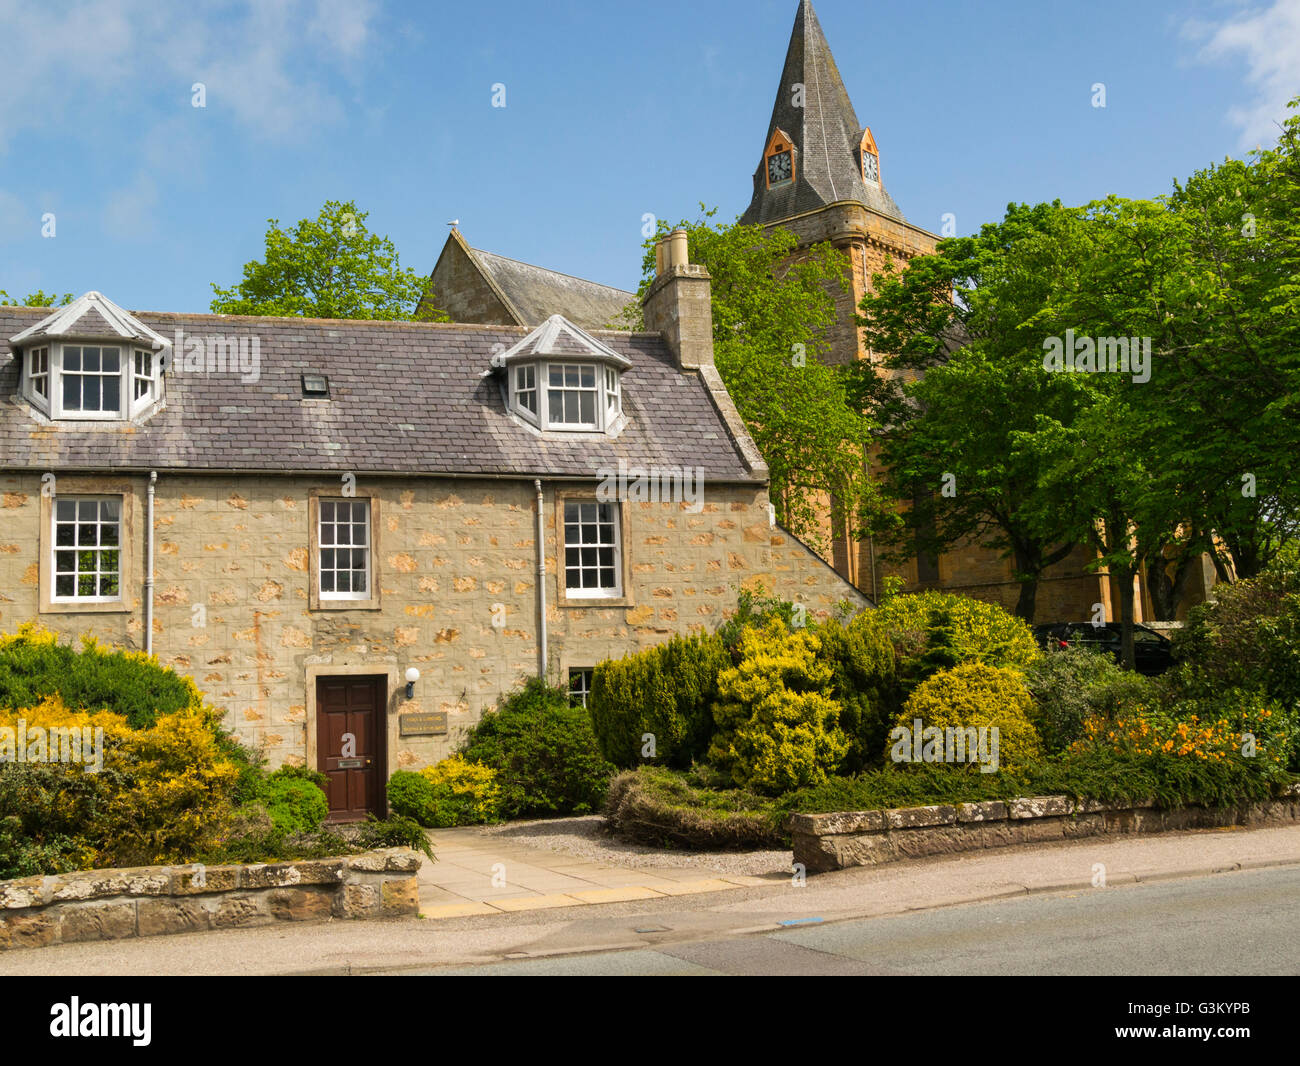 Lovely Stone Cottage In Front Of Dornoch Cathedral Sutherland Scottish Highlands A Former Royal Burgh Historic Town And Seaside Resort